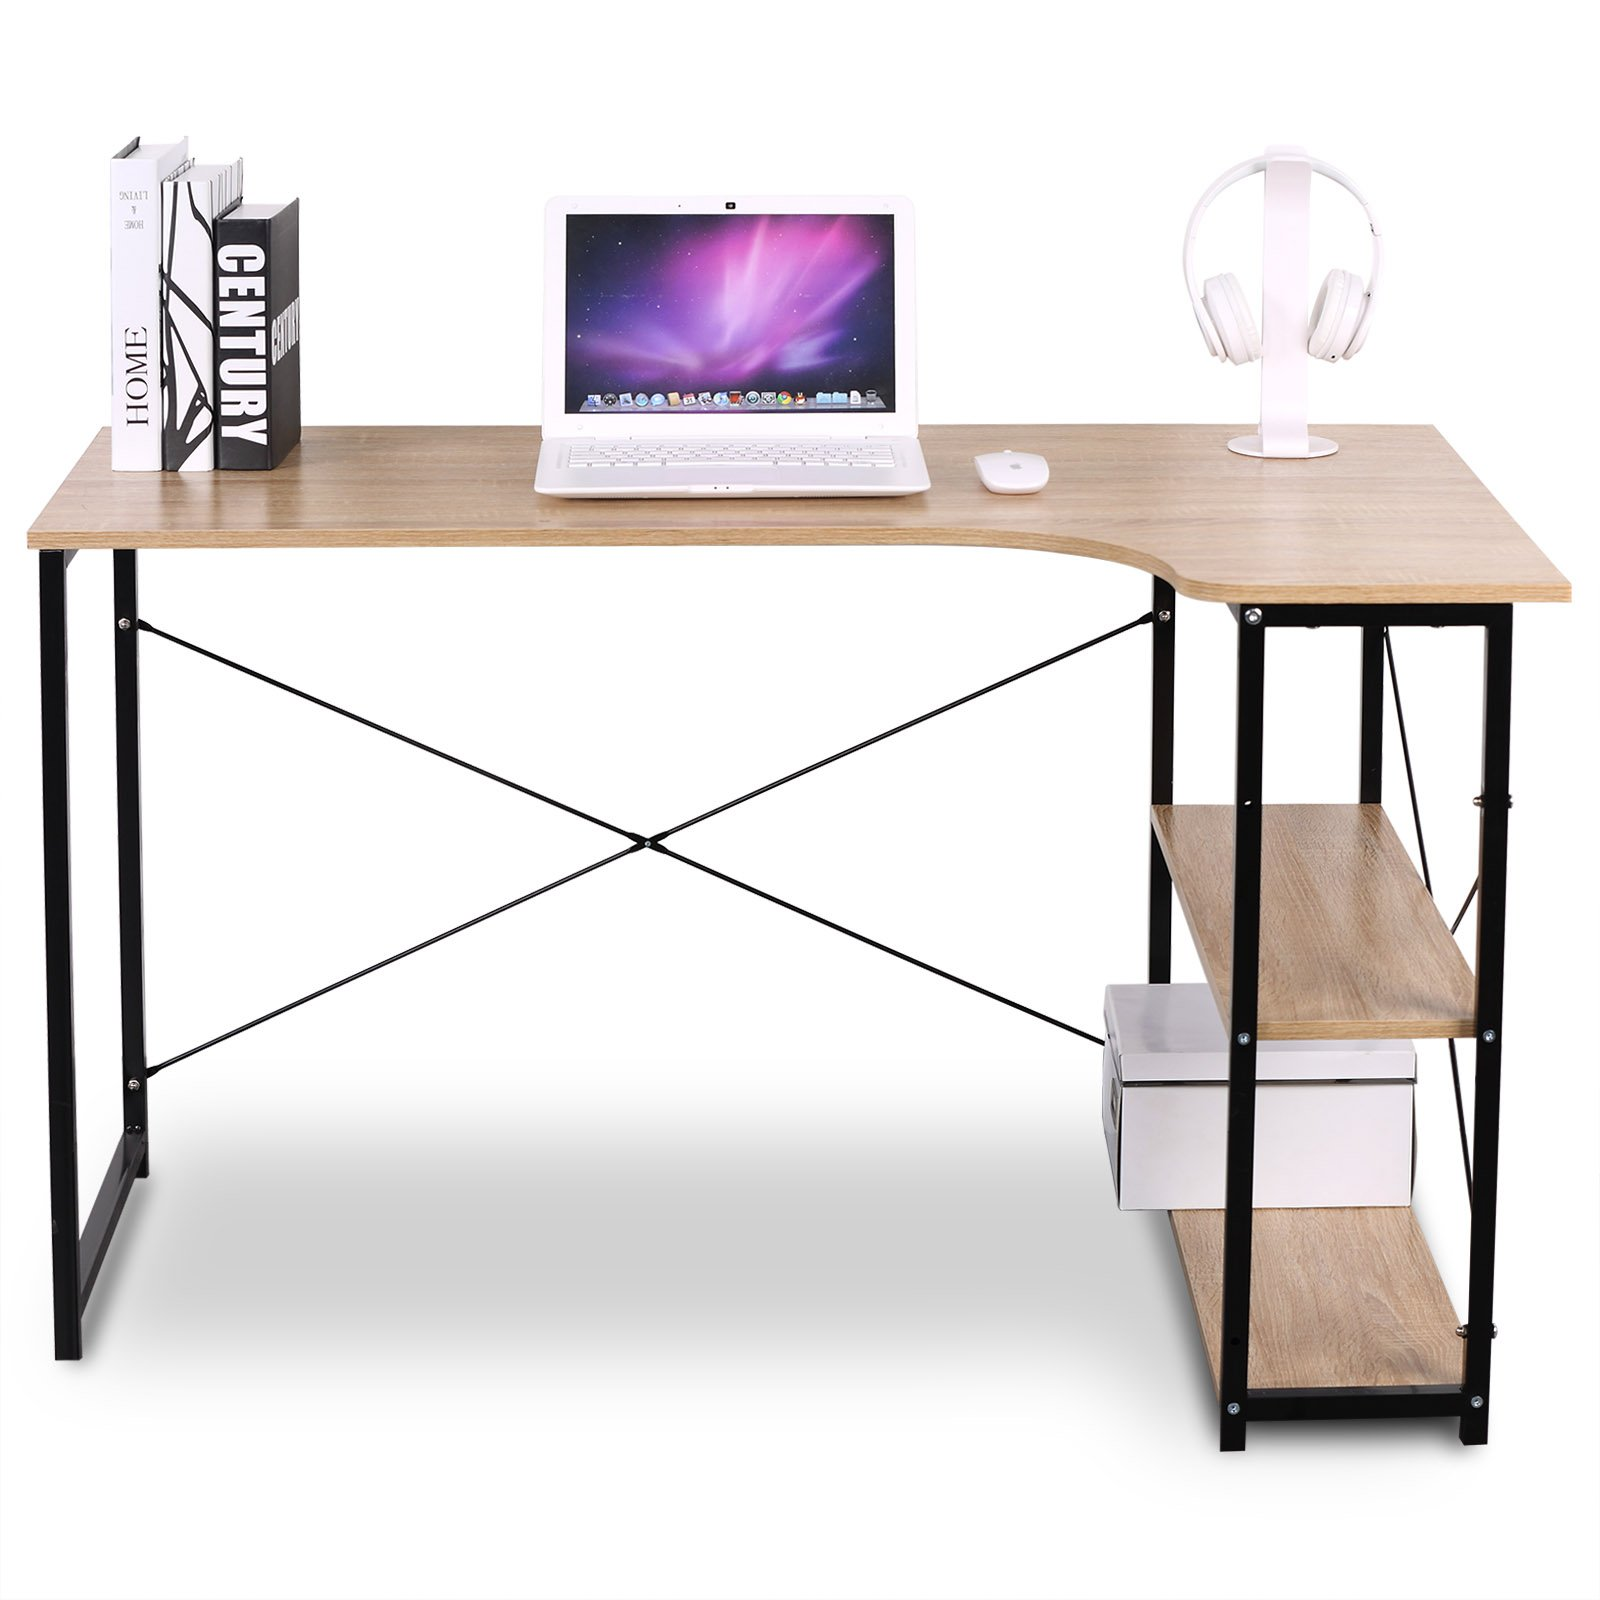 WOLTU L-Shaped Corner Computer Office Desk Modern PC laptop Workstation Table Home Office Desk Wood&Metal Black (Woodlook)